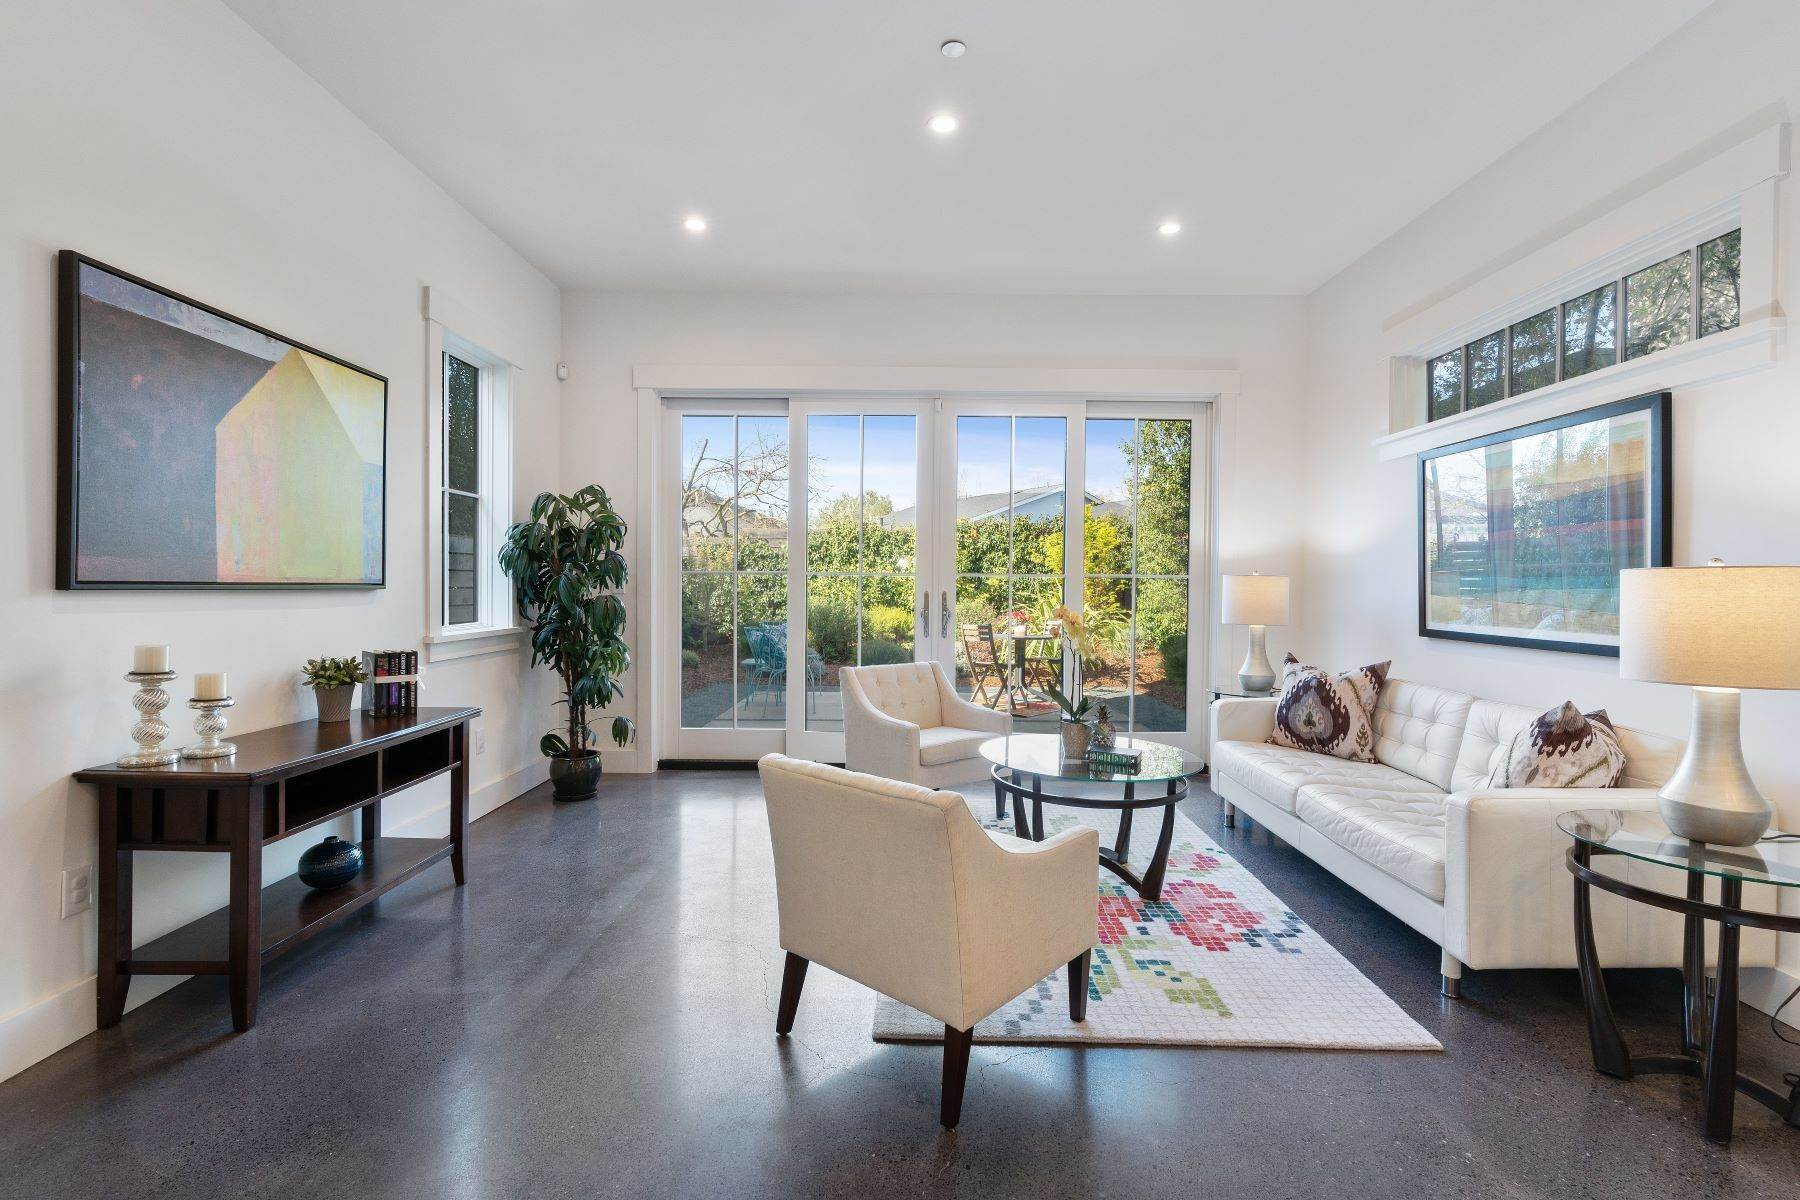 6. Single Family Homes for Sale at Modern Meets Comfort 888 59th Street Oakland, California 94608 United States